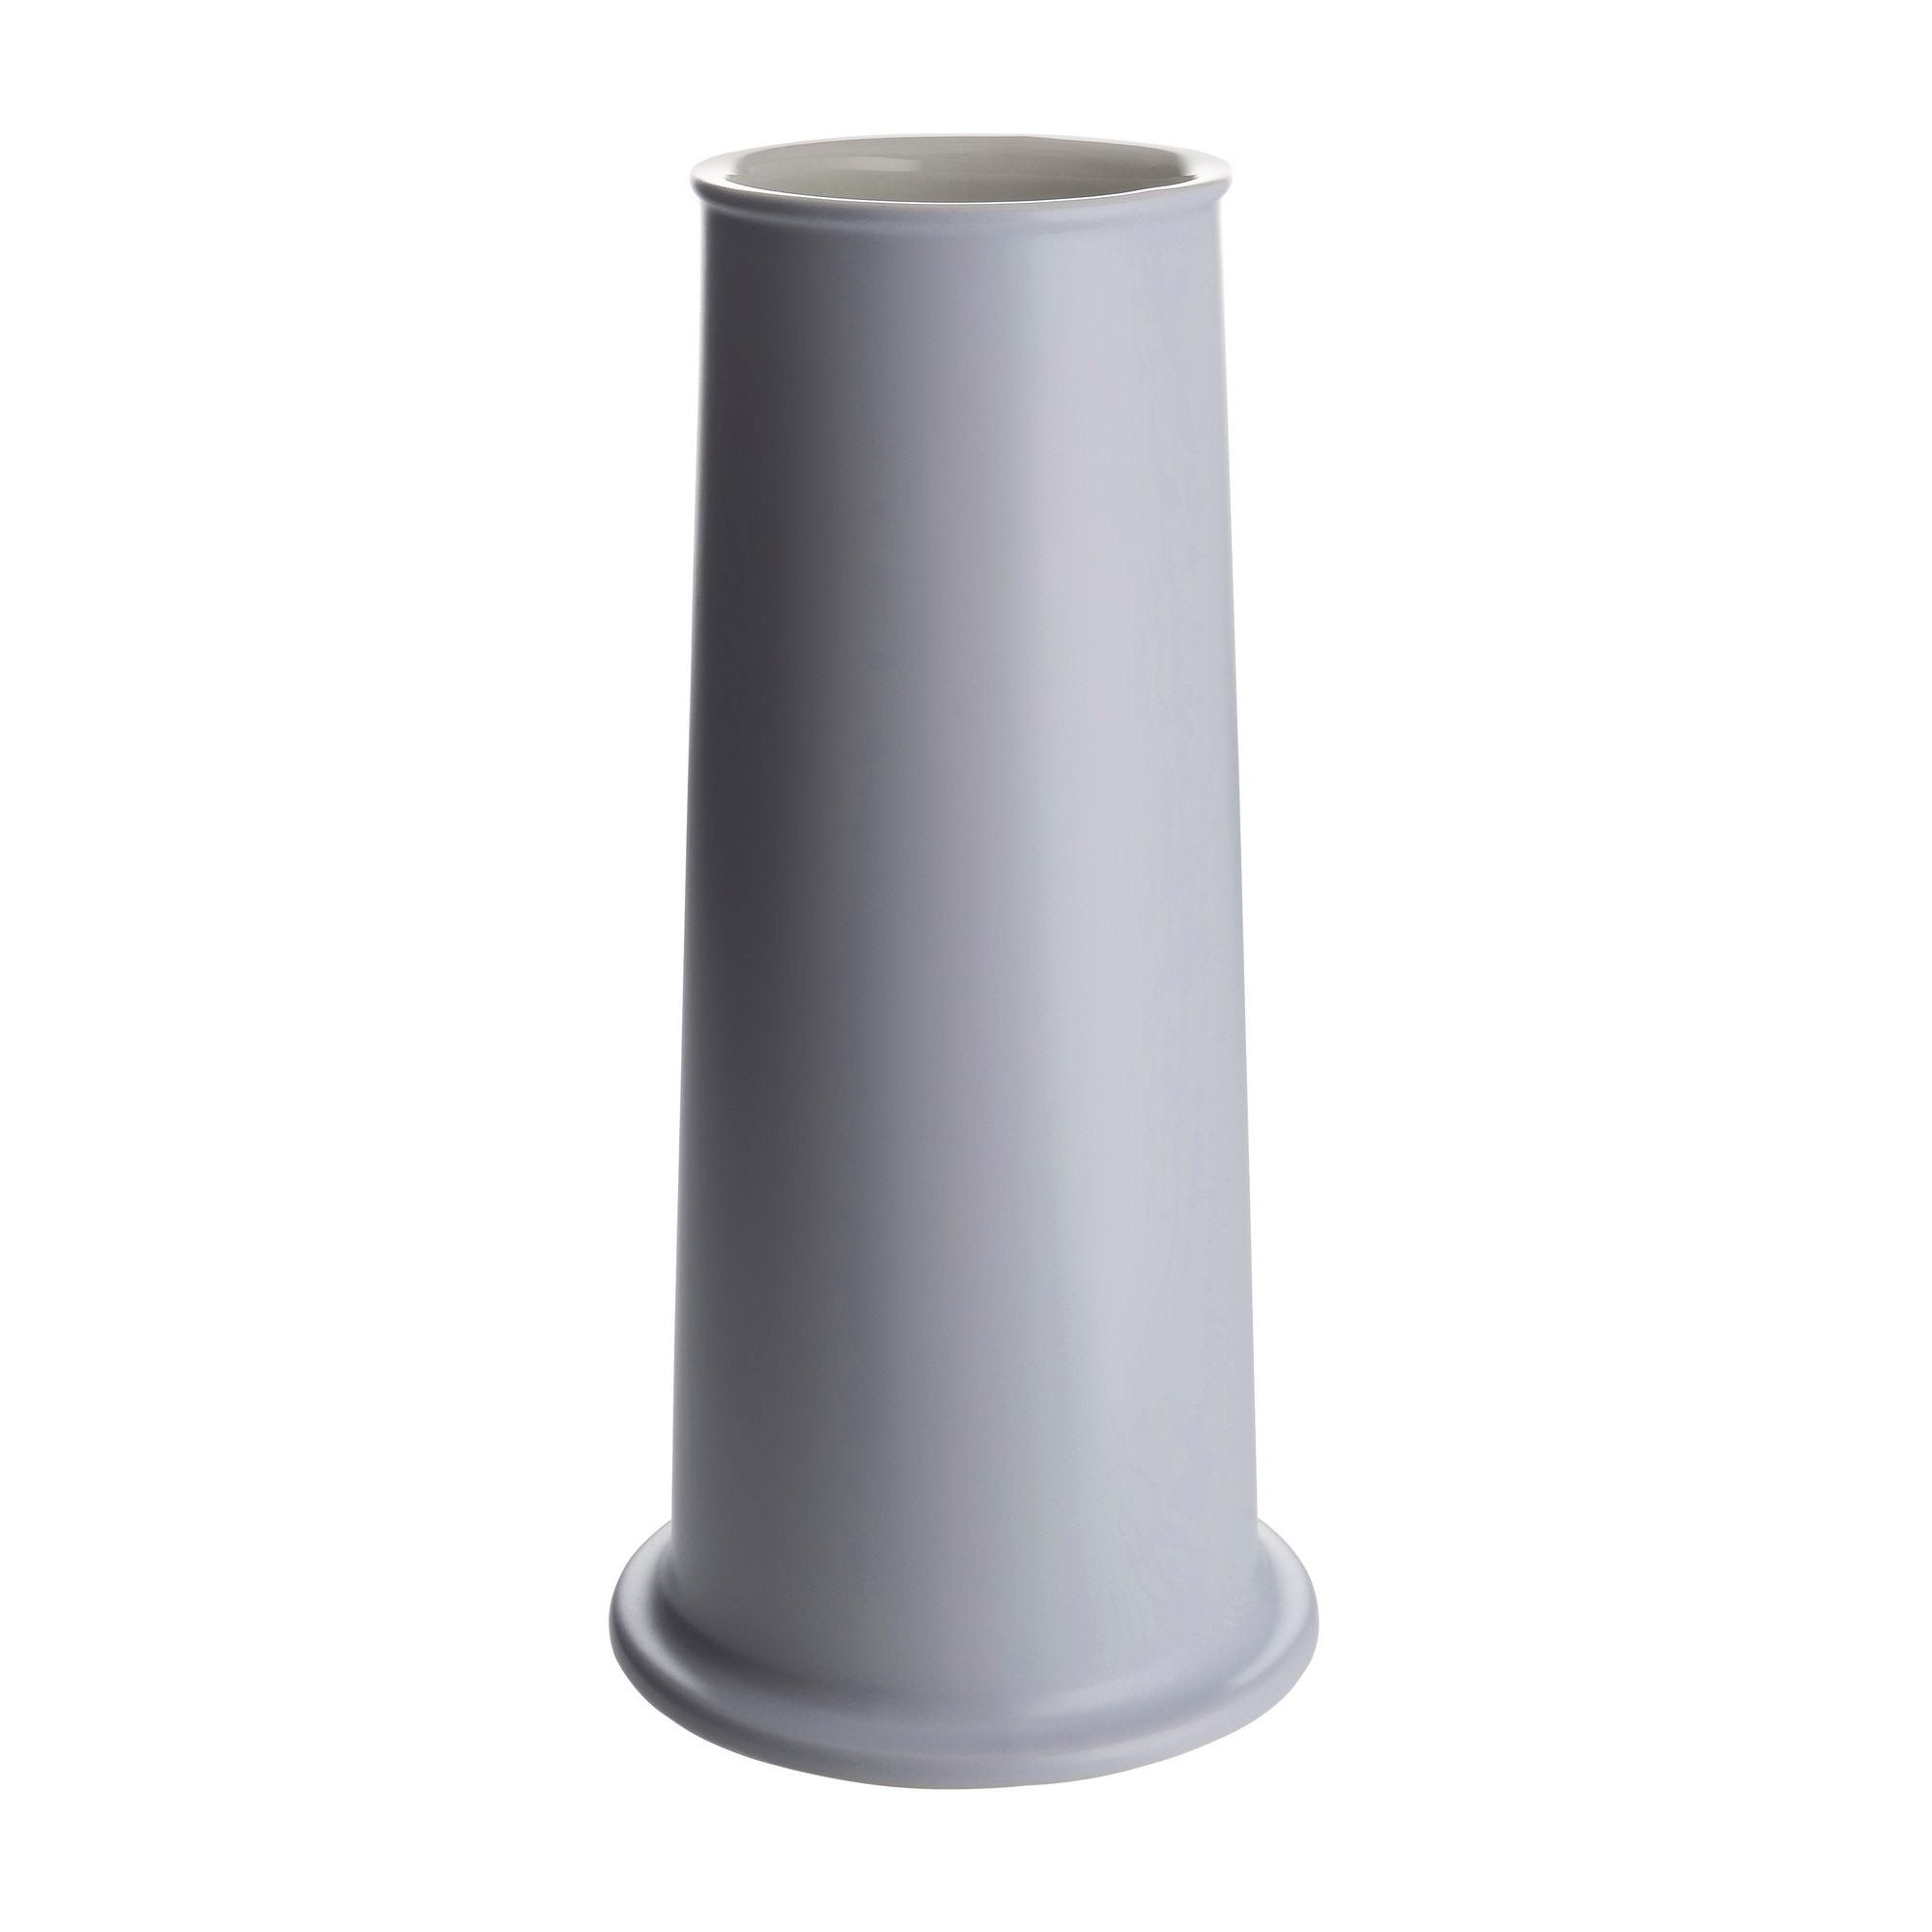 FLOWER VASE - TONALE - PALE BLUE